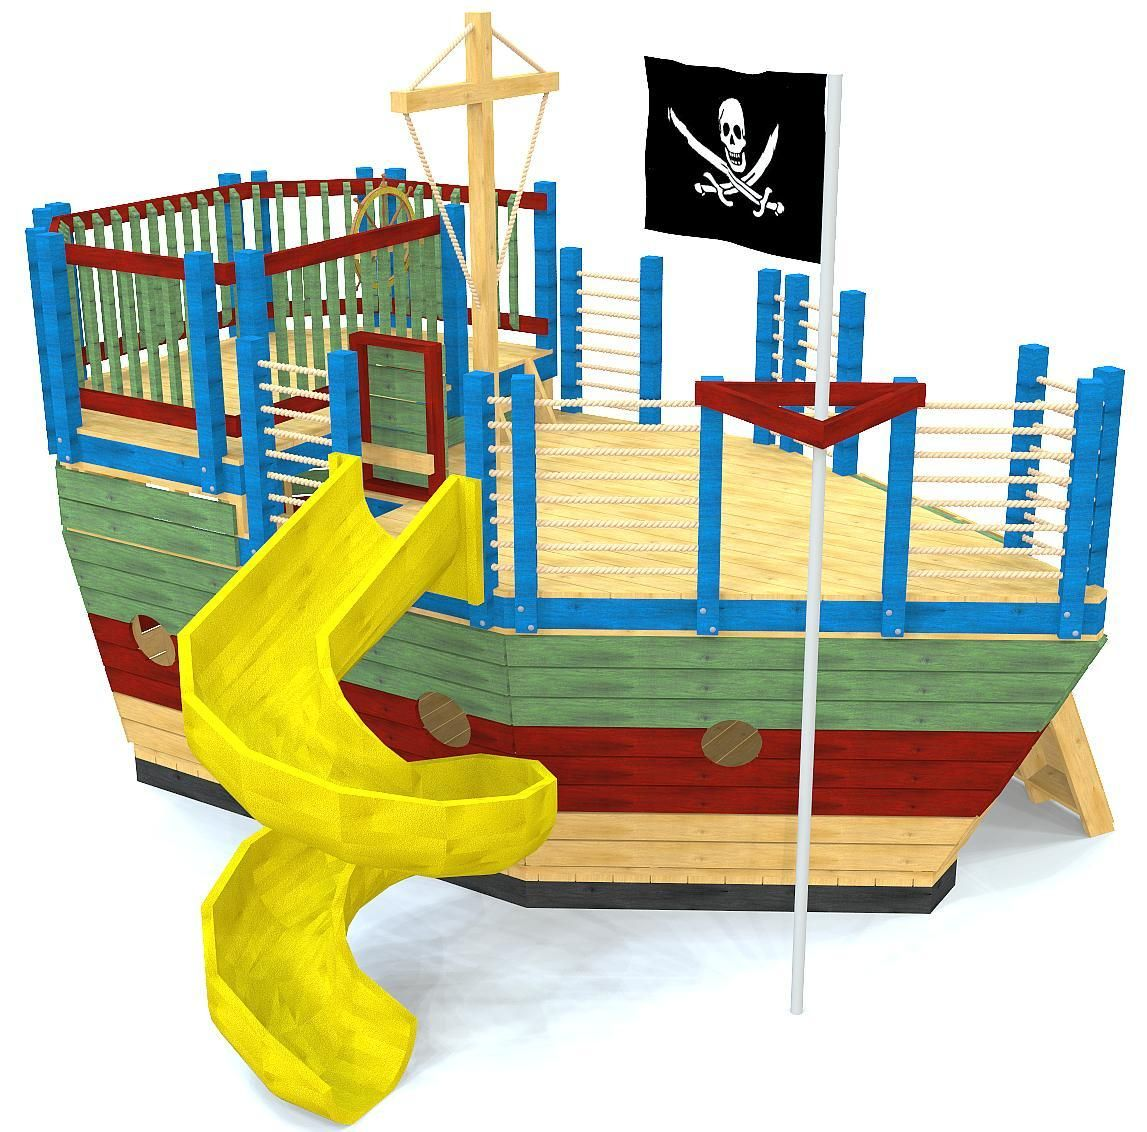 Diy loft bed with slide plans  Edward Thatch Pirate Ship Play Plan  DIY  Pinterest  Play houses